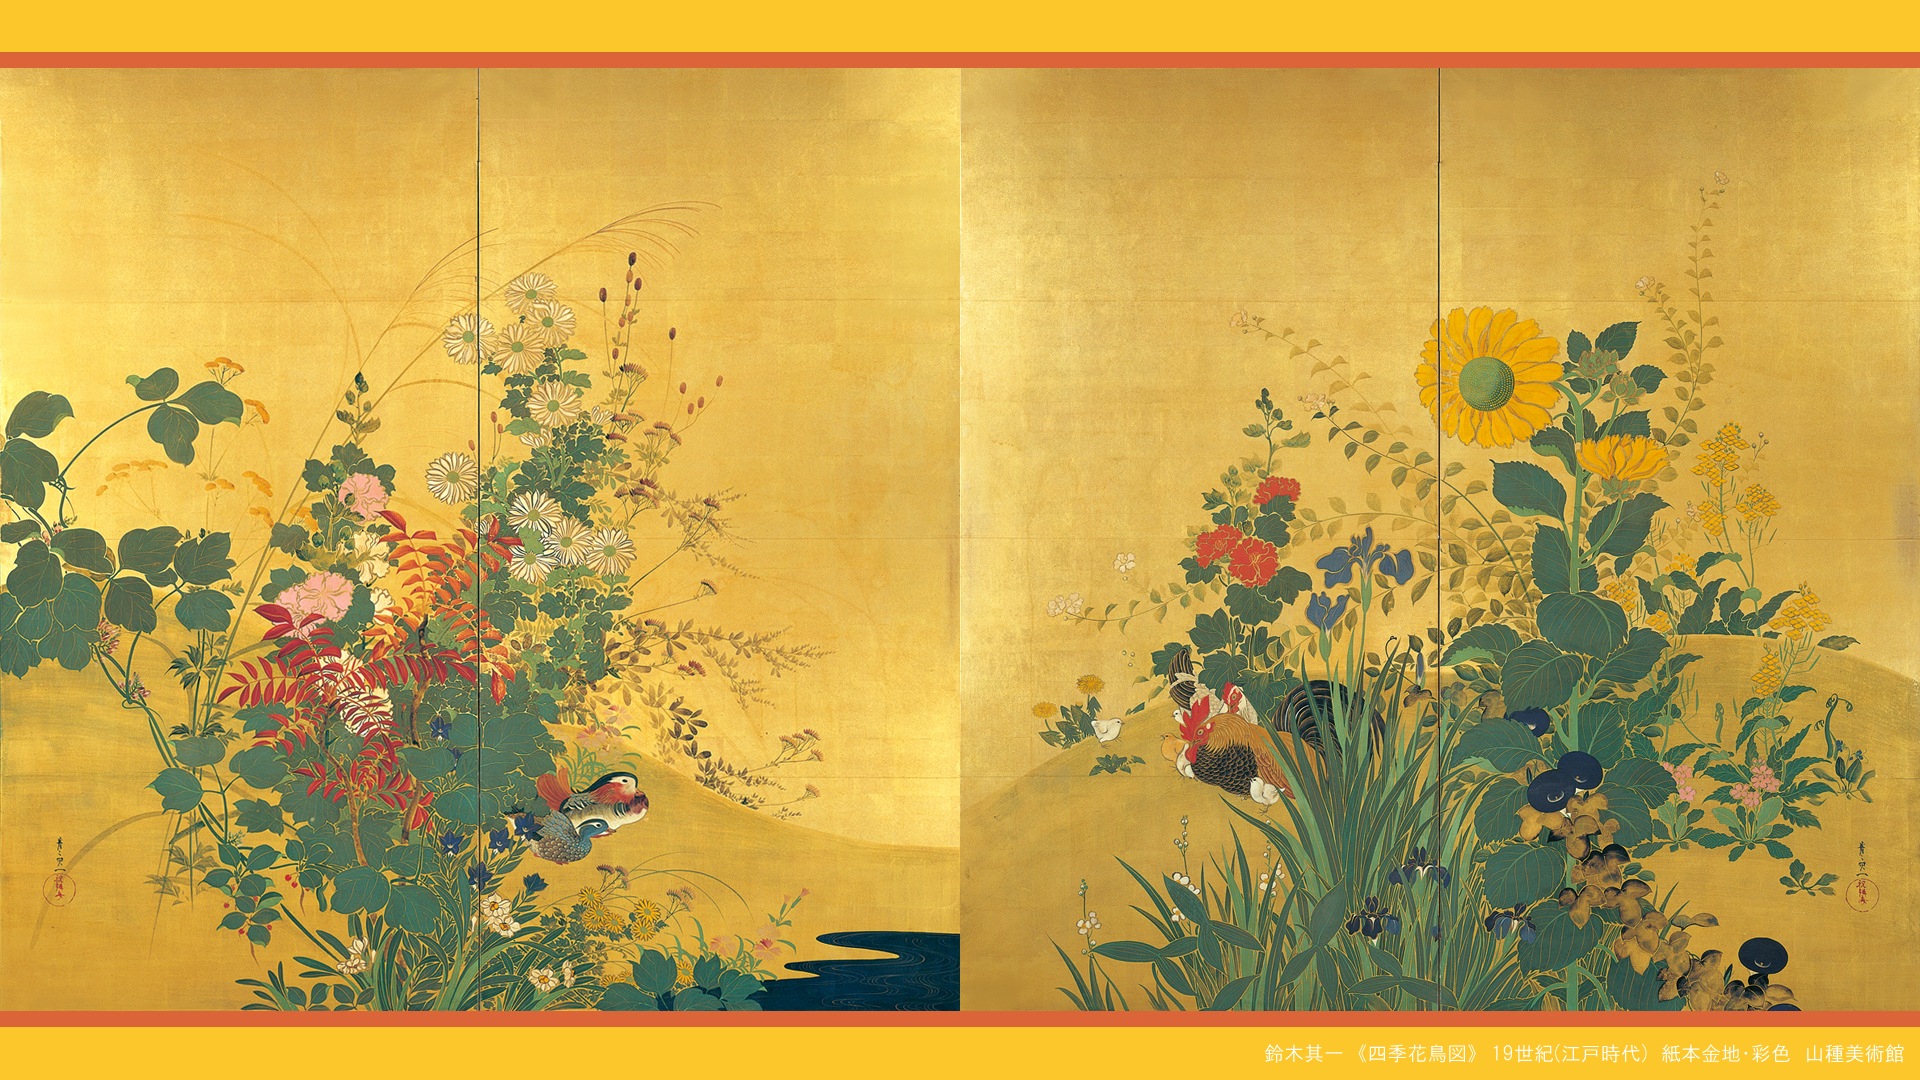 Get these classical Japanese paintings as free backgrounds for your next video call